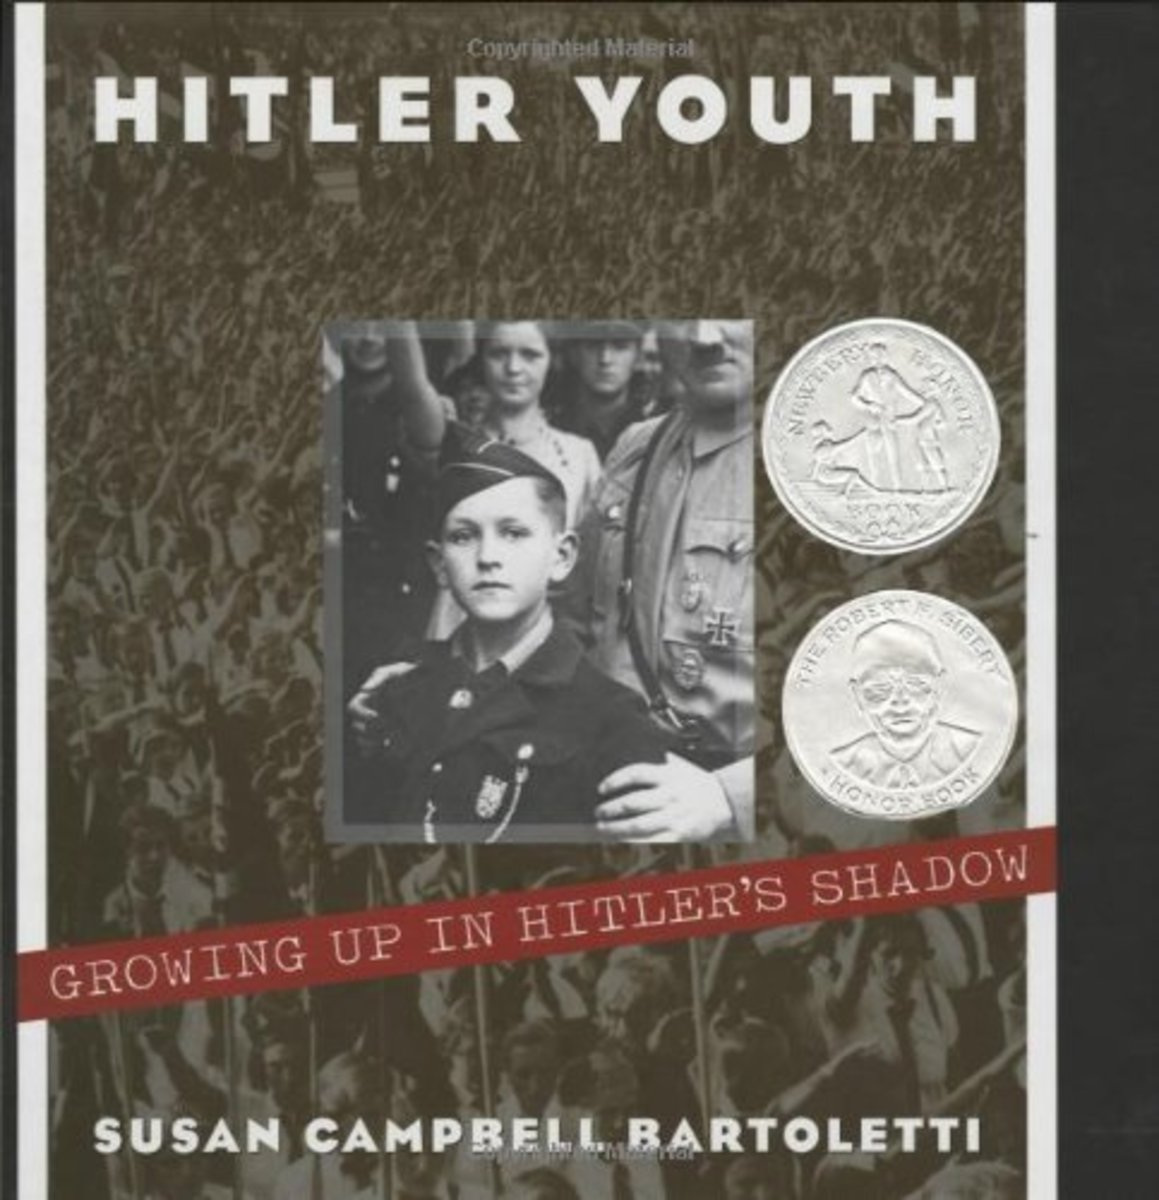 Hitler Youth: Growing up in Hitler's Shadow by Susan Campbell Bartoletti